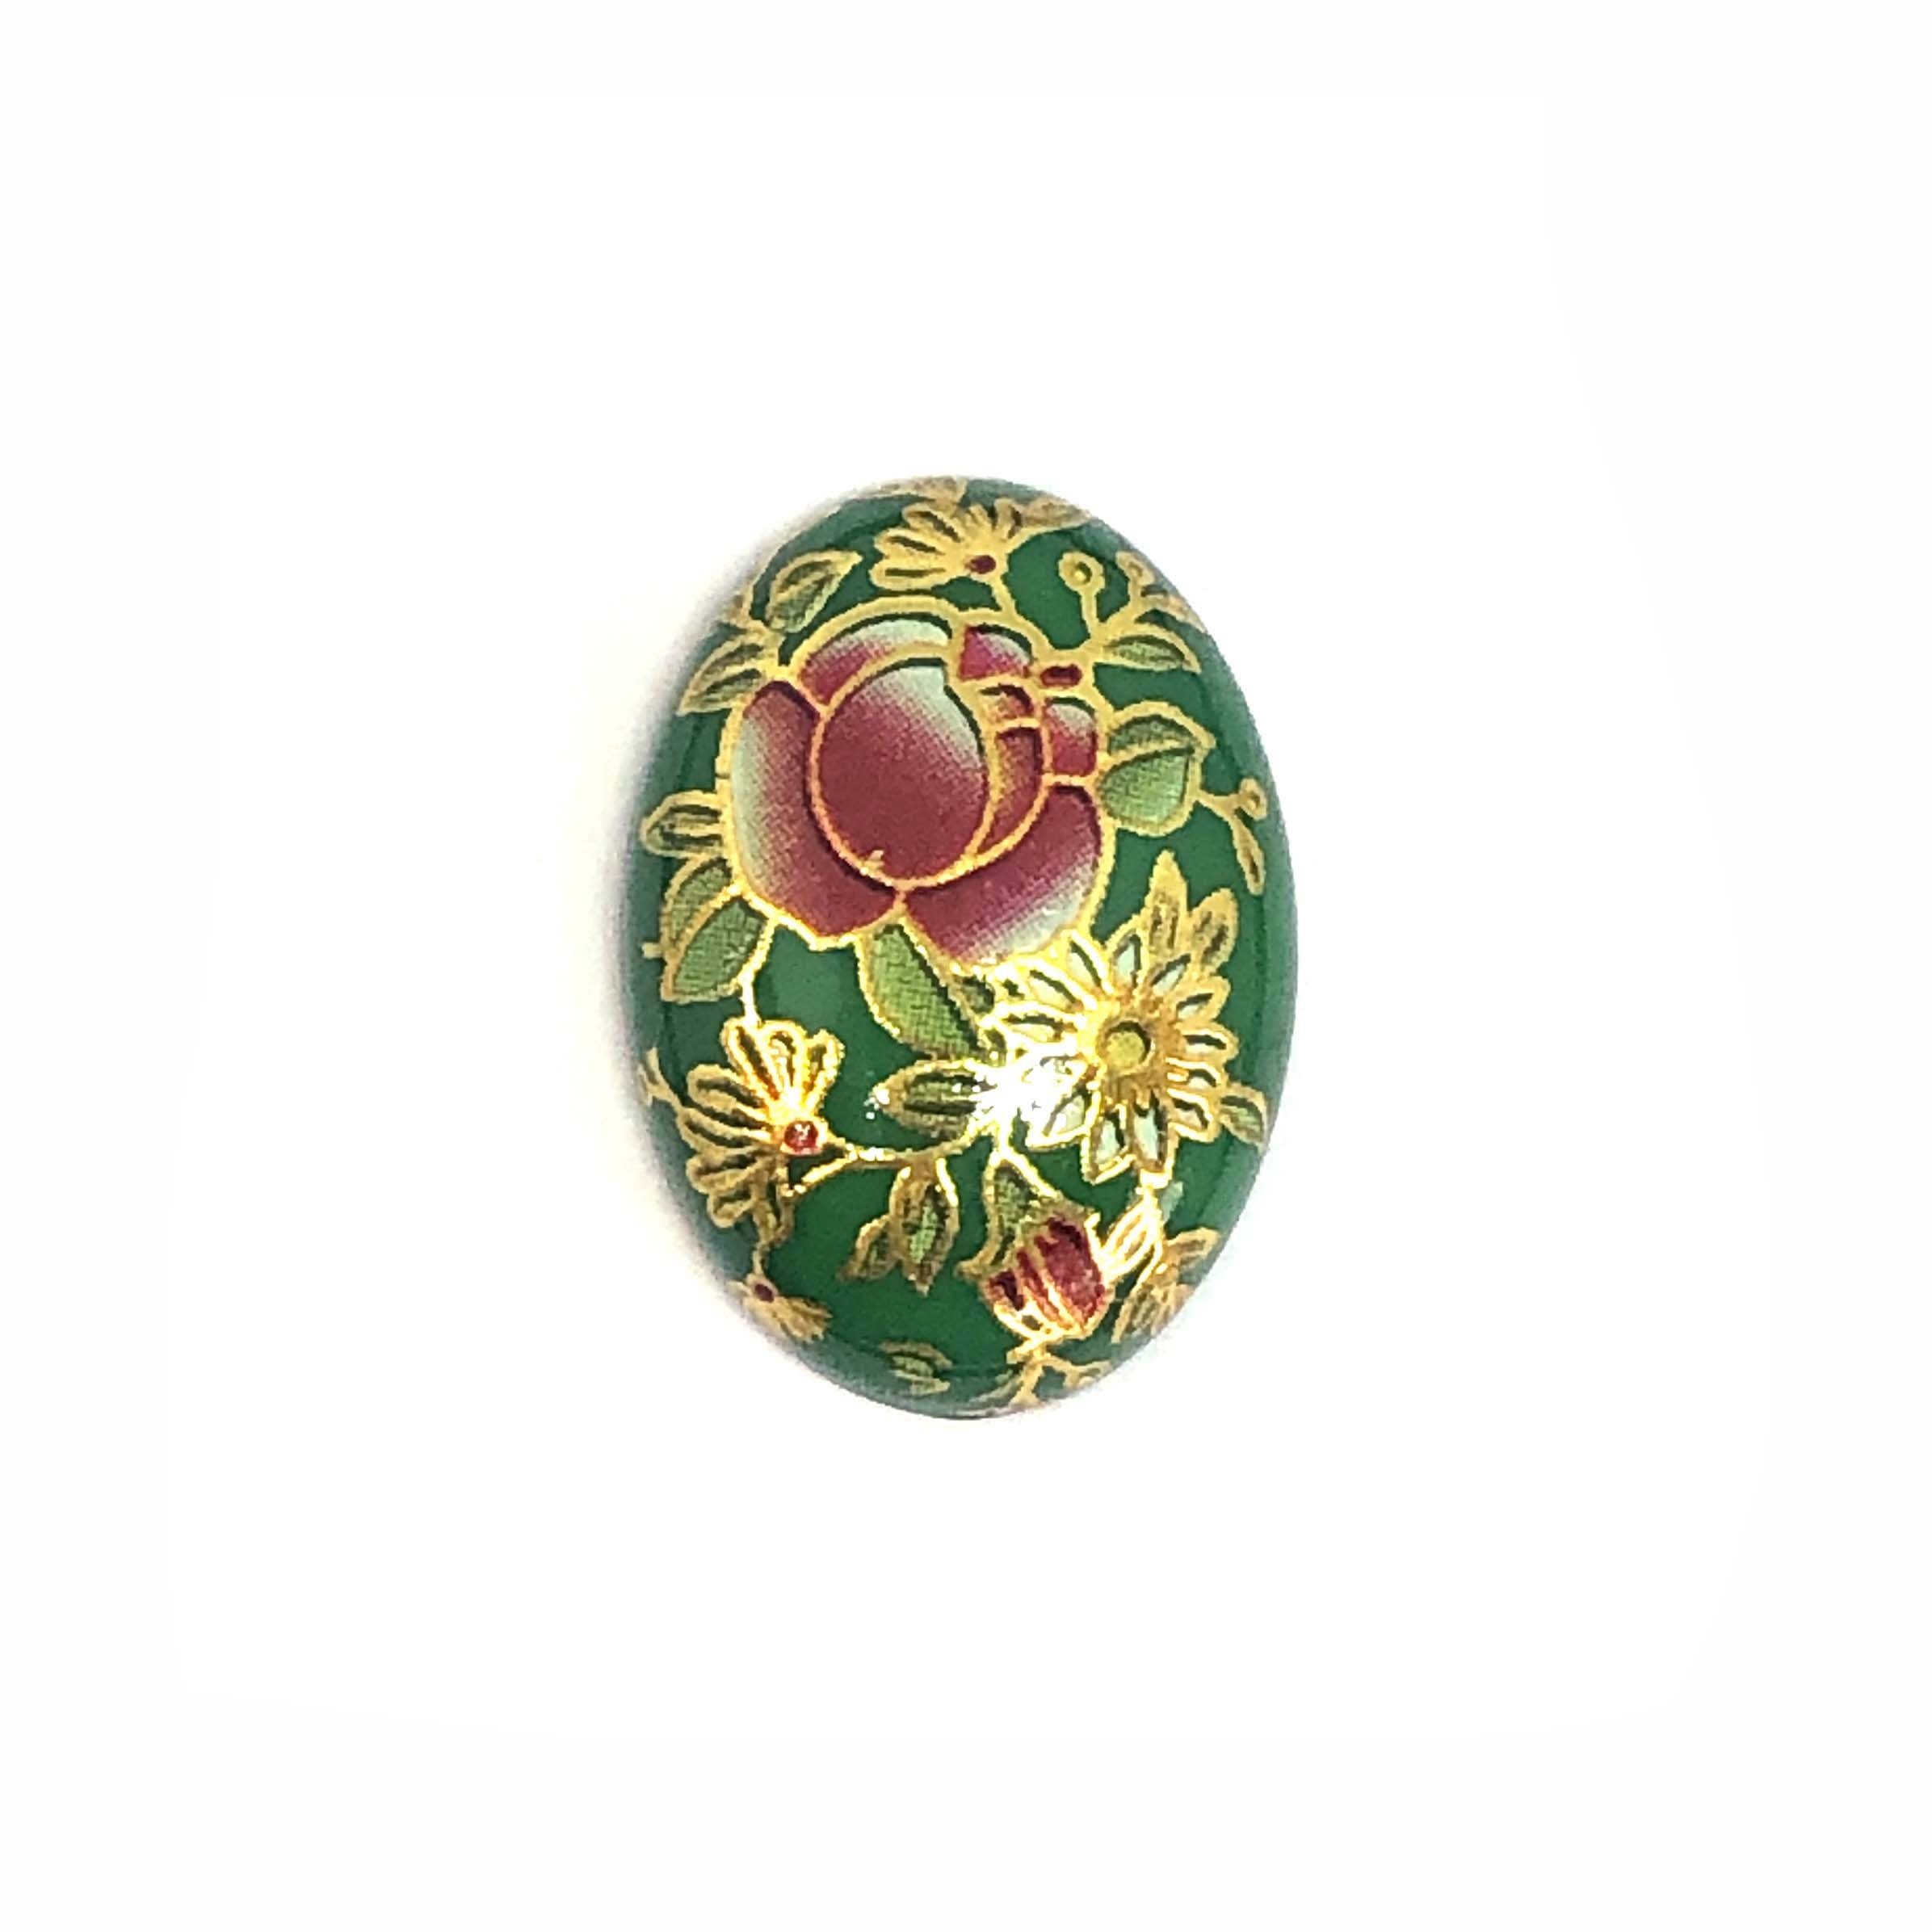 Japanese Tensha cabochon, resin, cabochons, green, cameo, 07887, B'sue Boutiques, flat back stones, vintage jewelry supplies, jewelry making, jewelry supplies, 25x18mm, cameos, rose flower pattern, floral